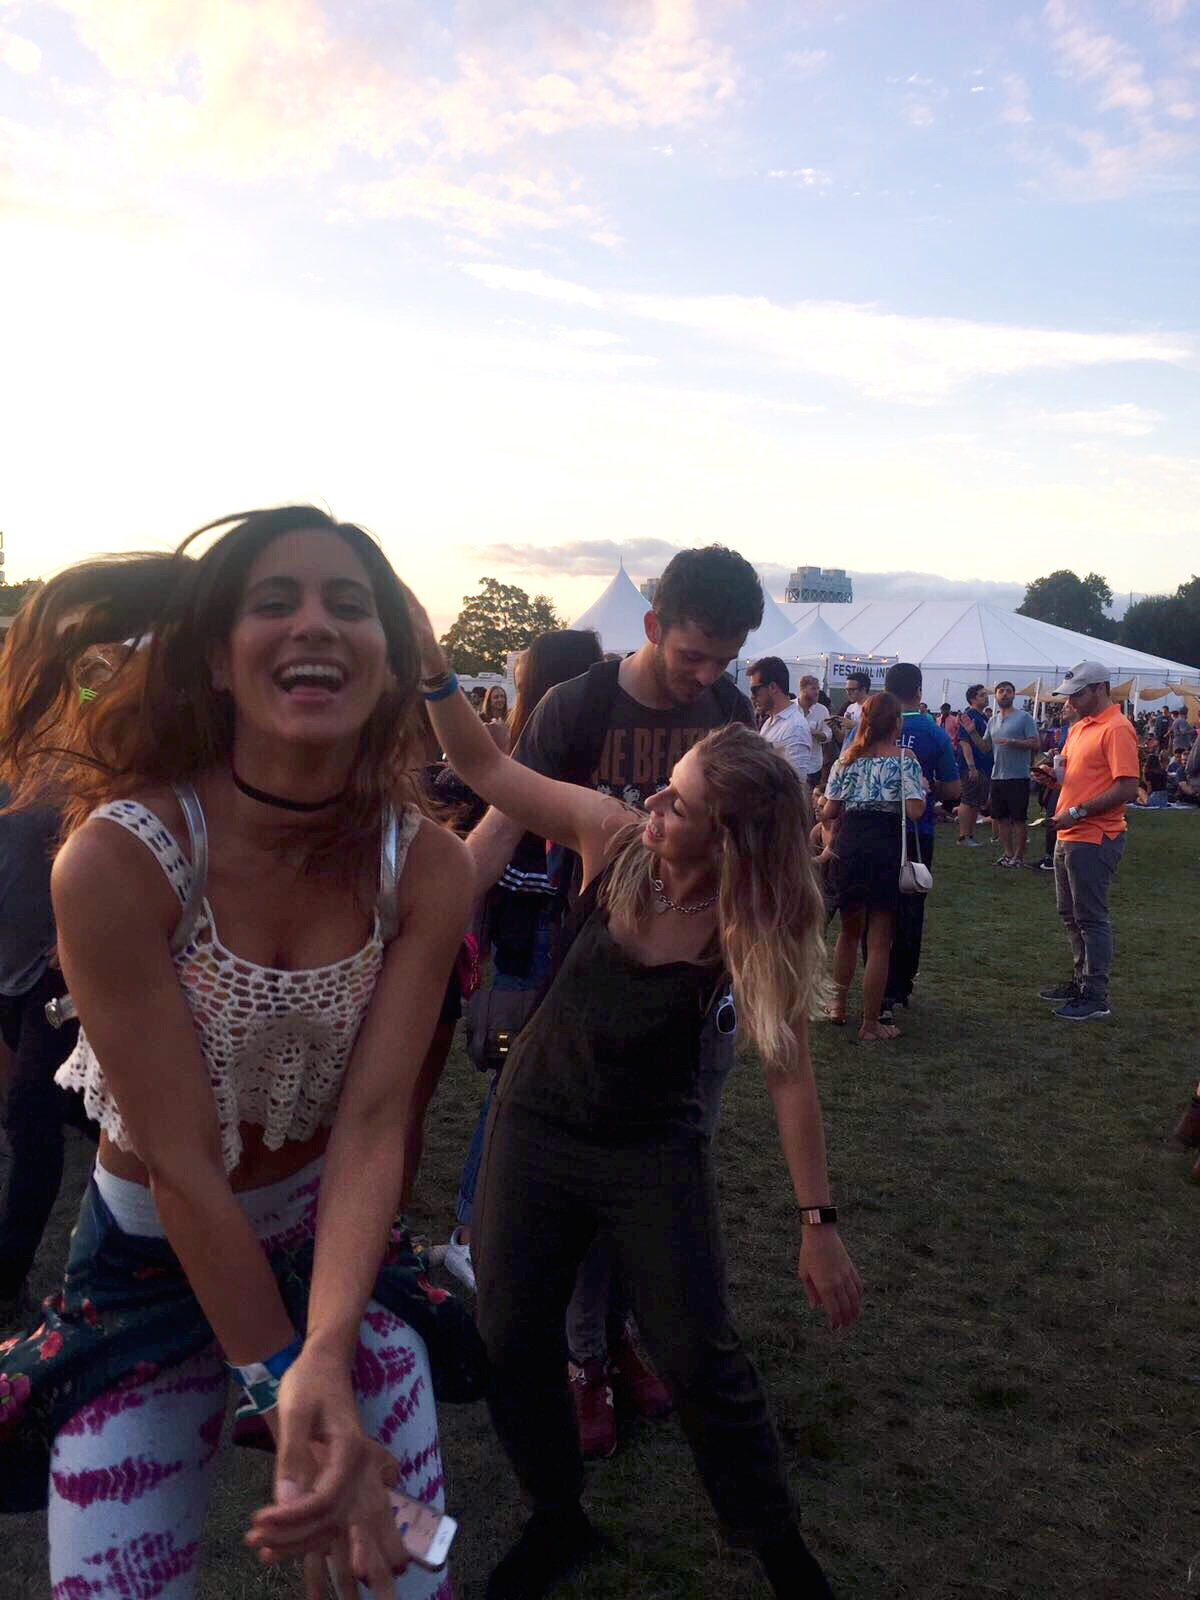 My Thoughts on Present Day Music Festival Culture